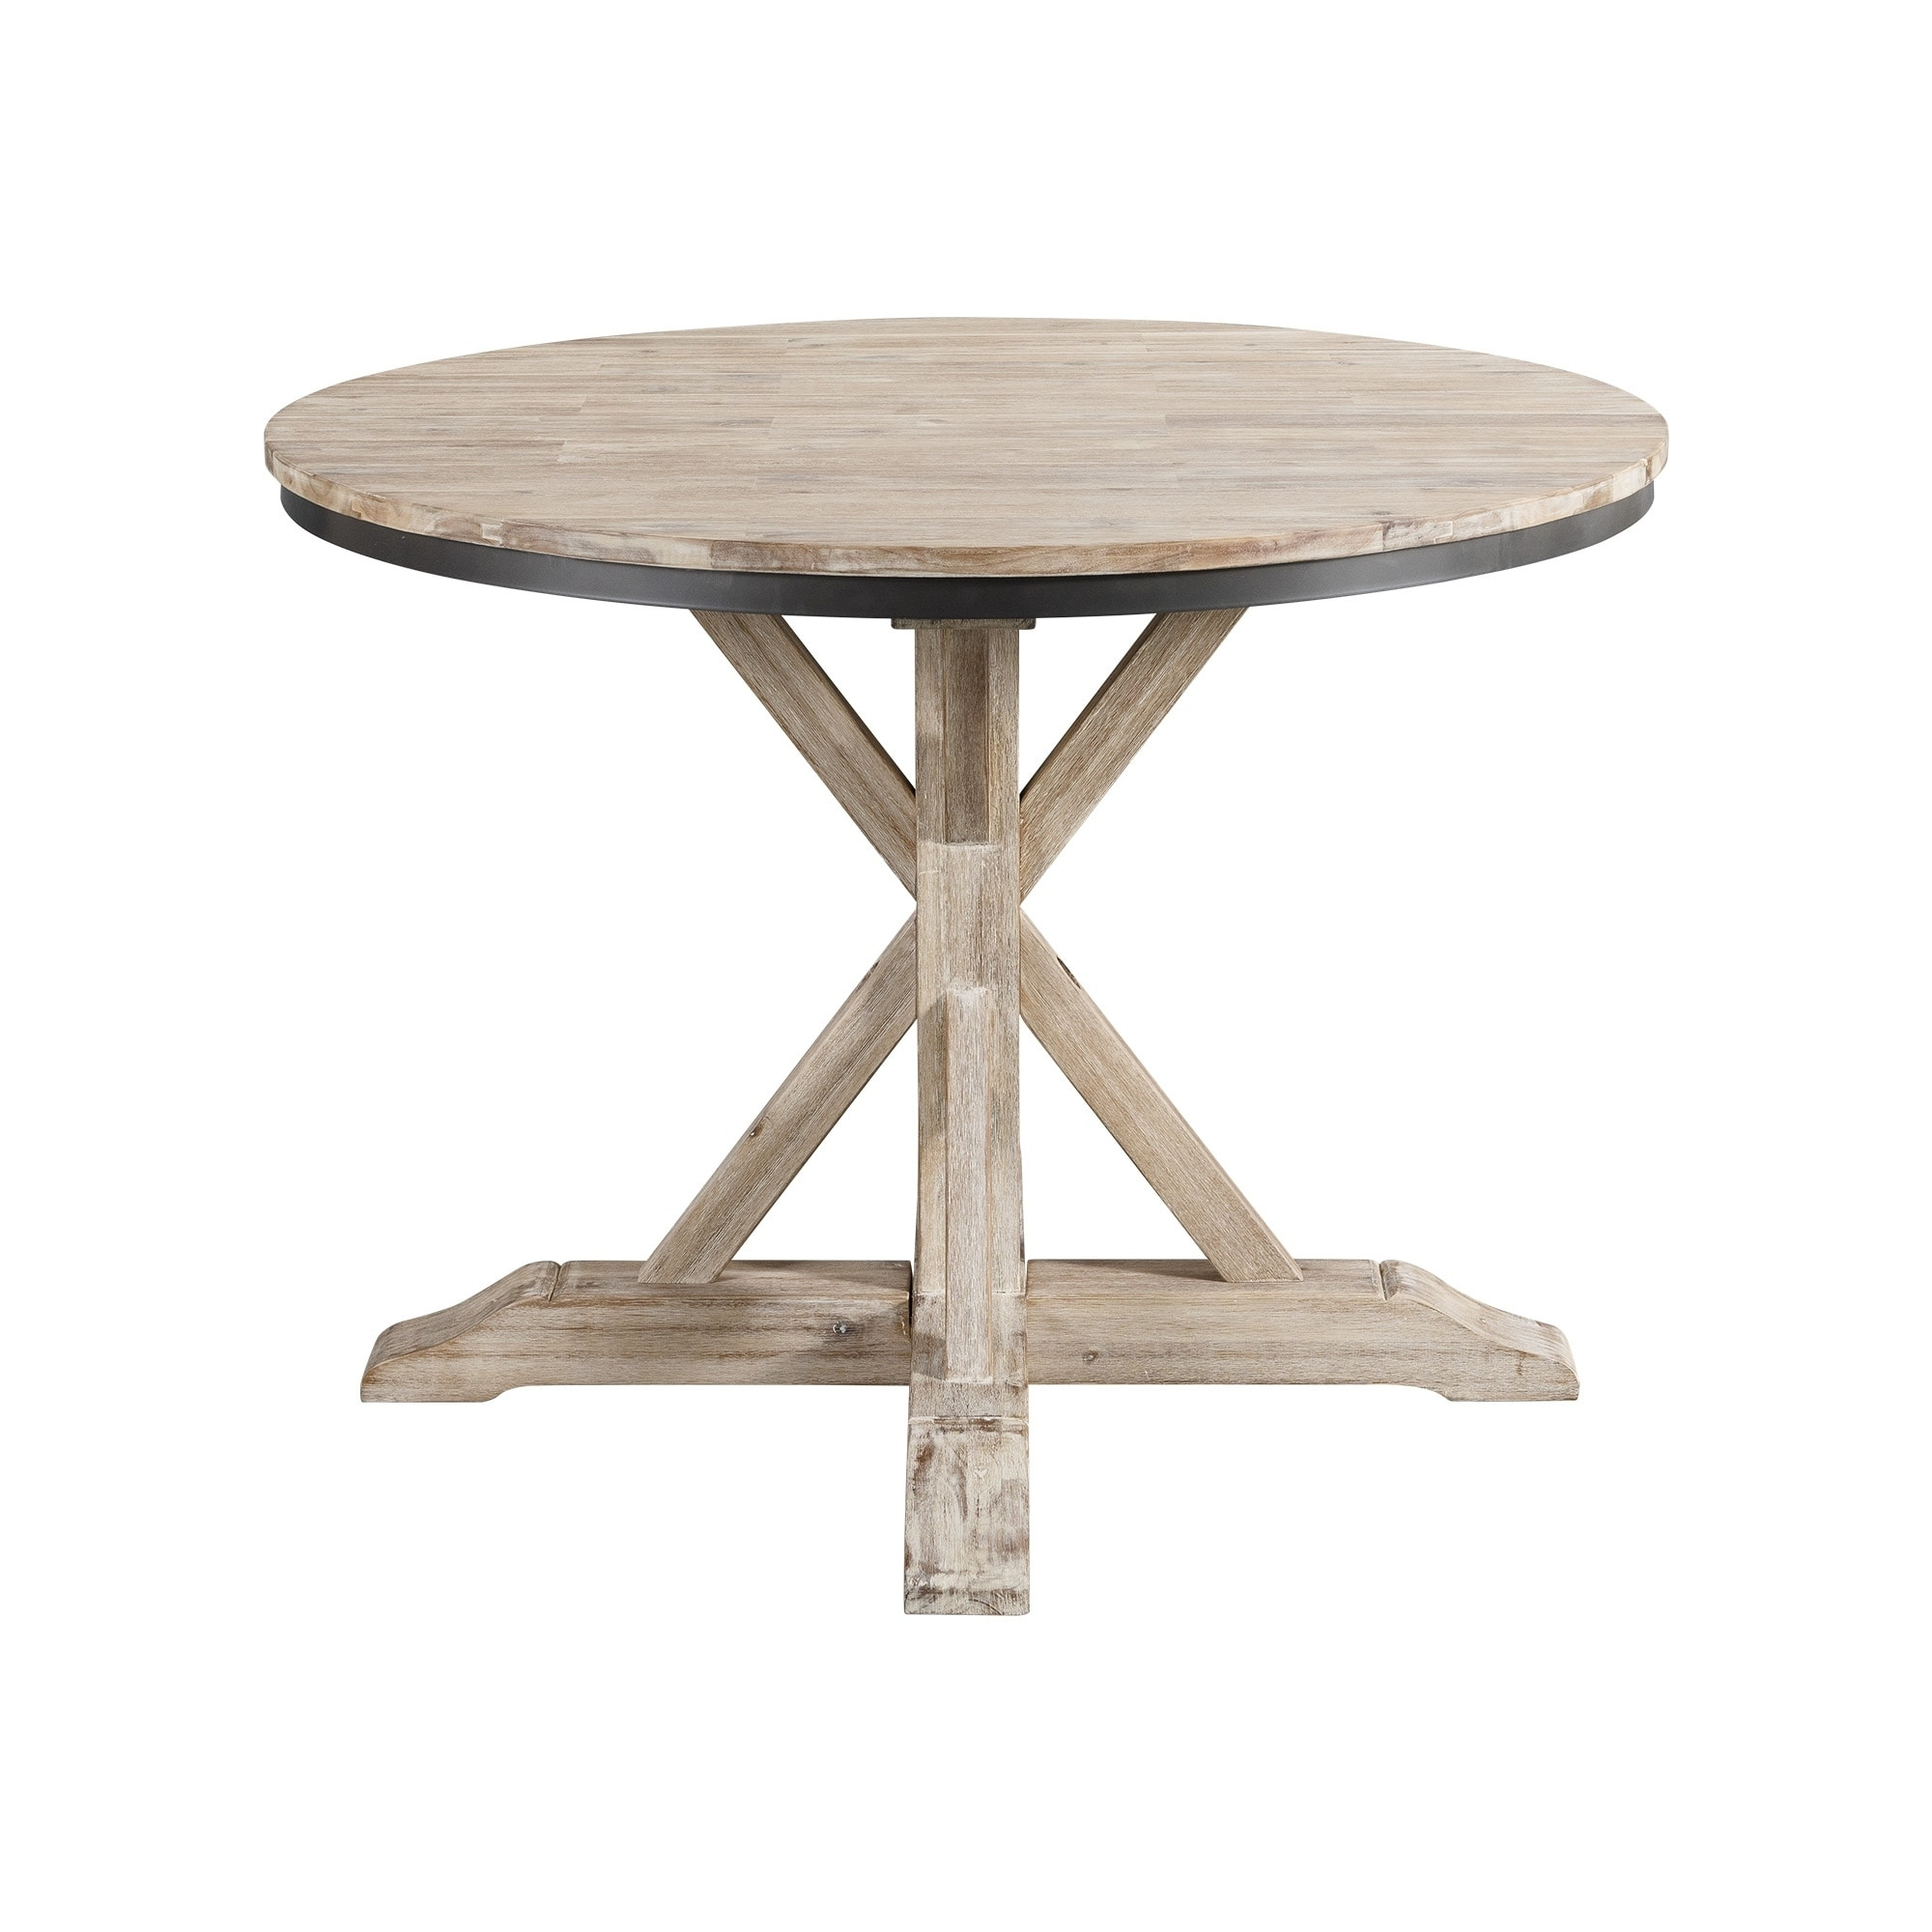 Shop The Gray Barn Whistle Stop Round Standard Height Dining Table Overstock 29146605